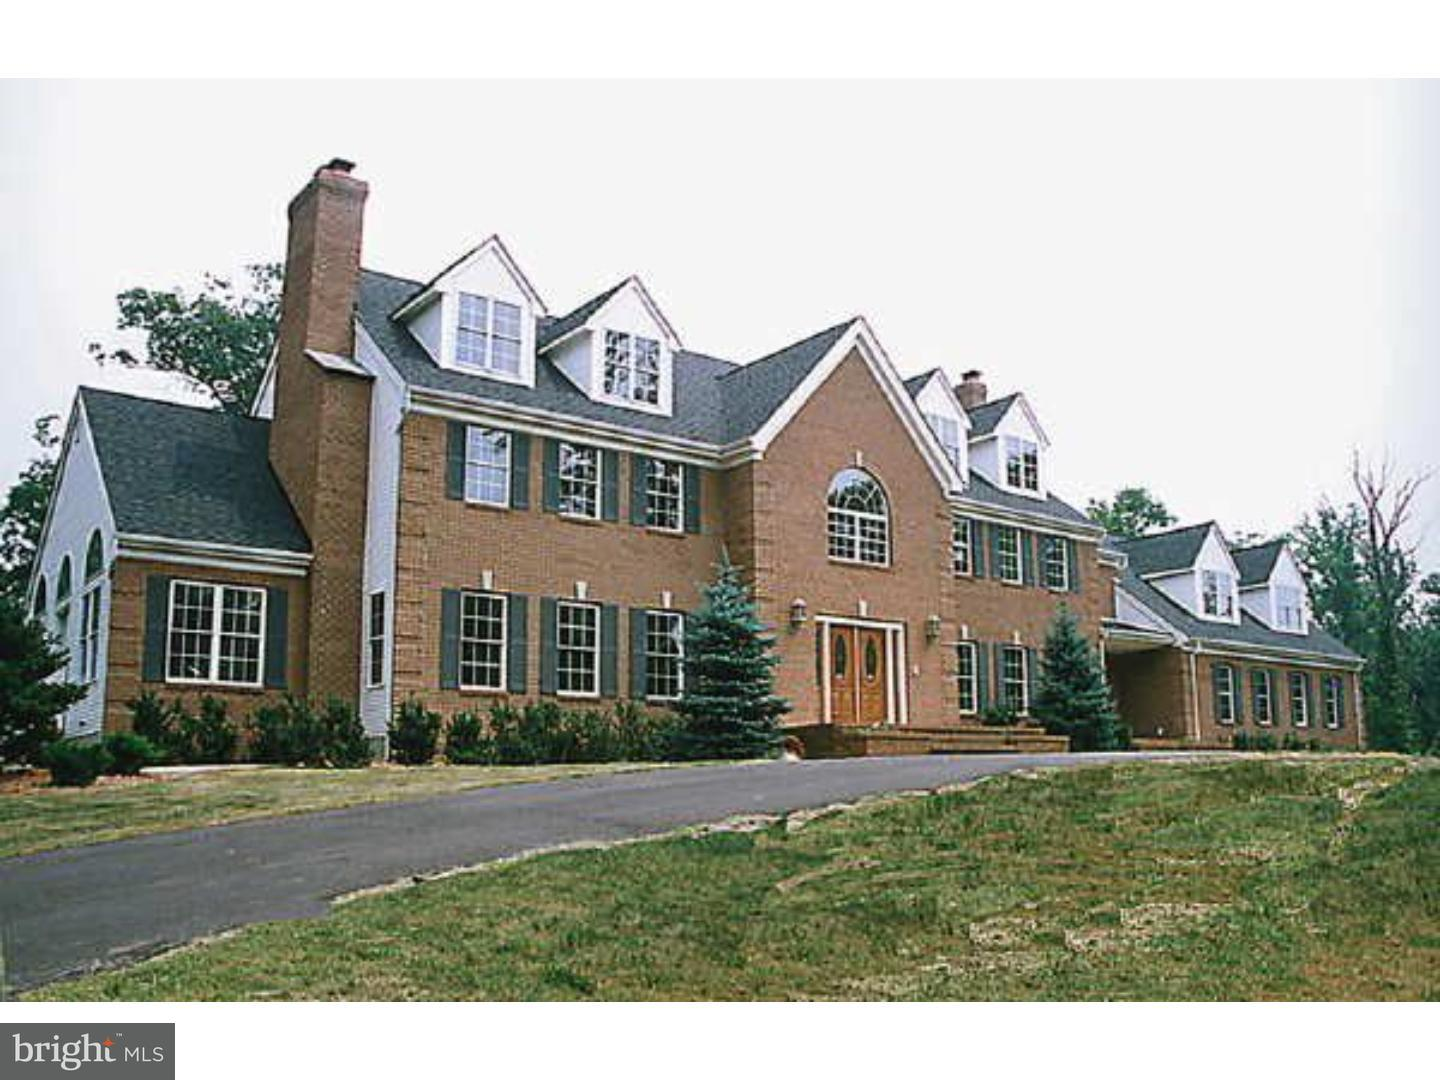 Single Family Home for Sale at 370 DUTCHTOWN-ZION Road Hillsborough, New Jersey 08844 United StatesMunicipality: Hillsborough